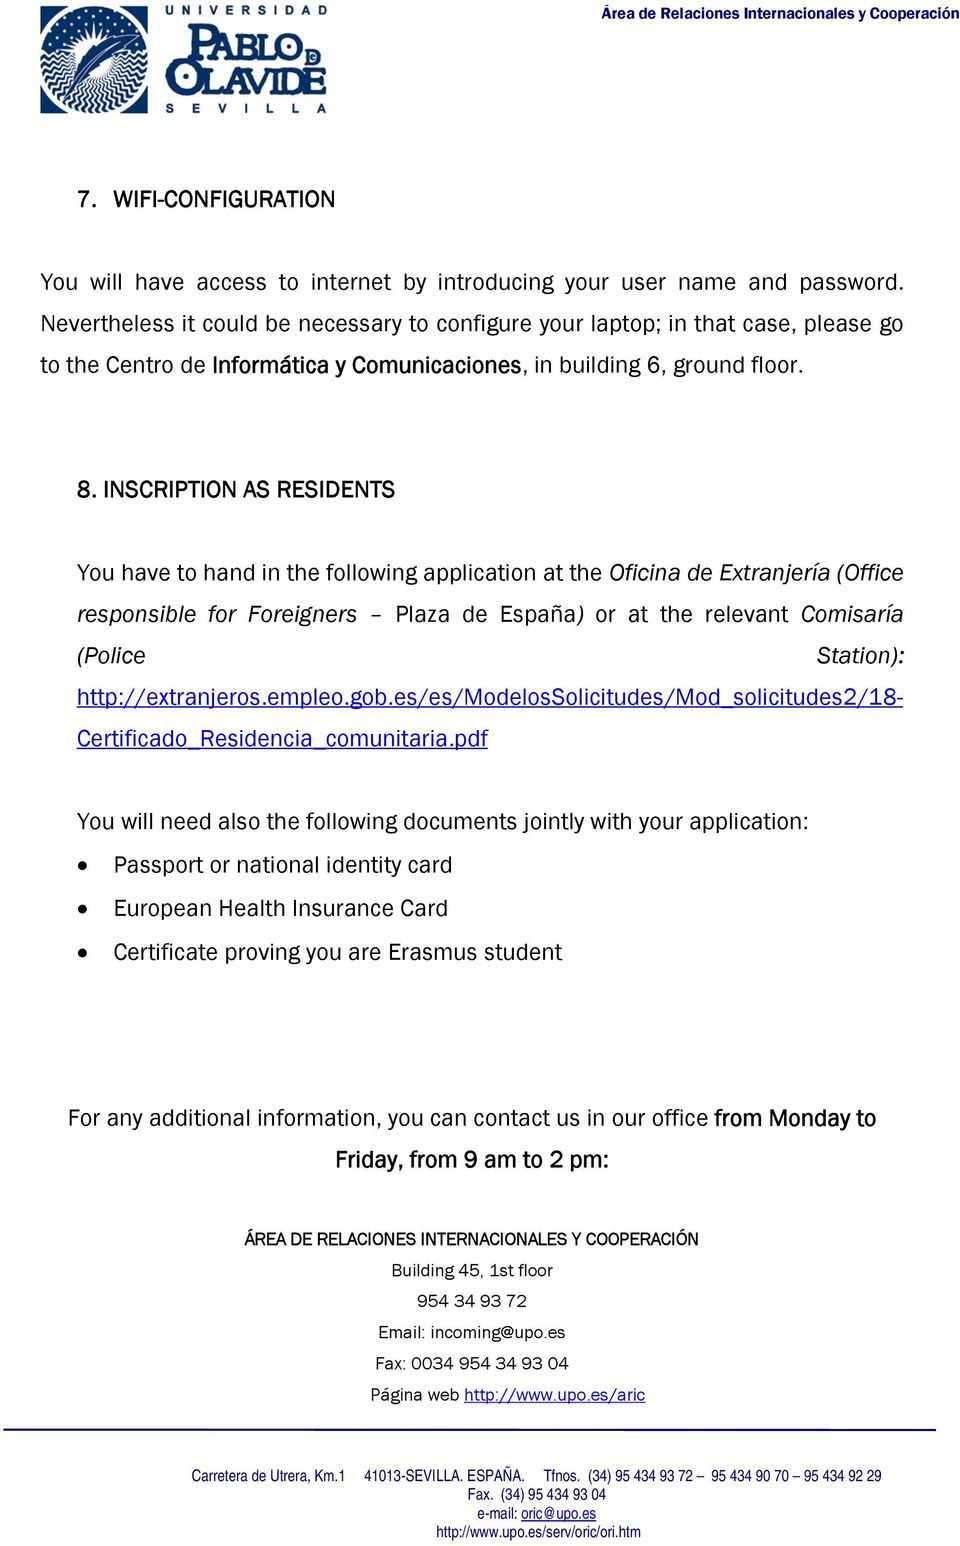 INSCRIPTION AS RESIDENTS You have to hand in the following application at the Oficina de Extranjería (Office responsible for Foreigners Plaza de España) or at the relevant Comisaría (Police Station):